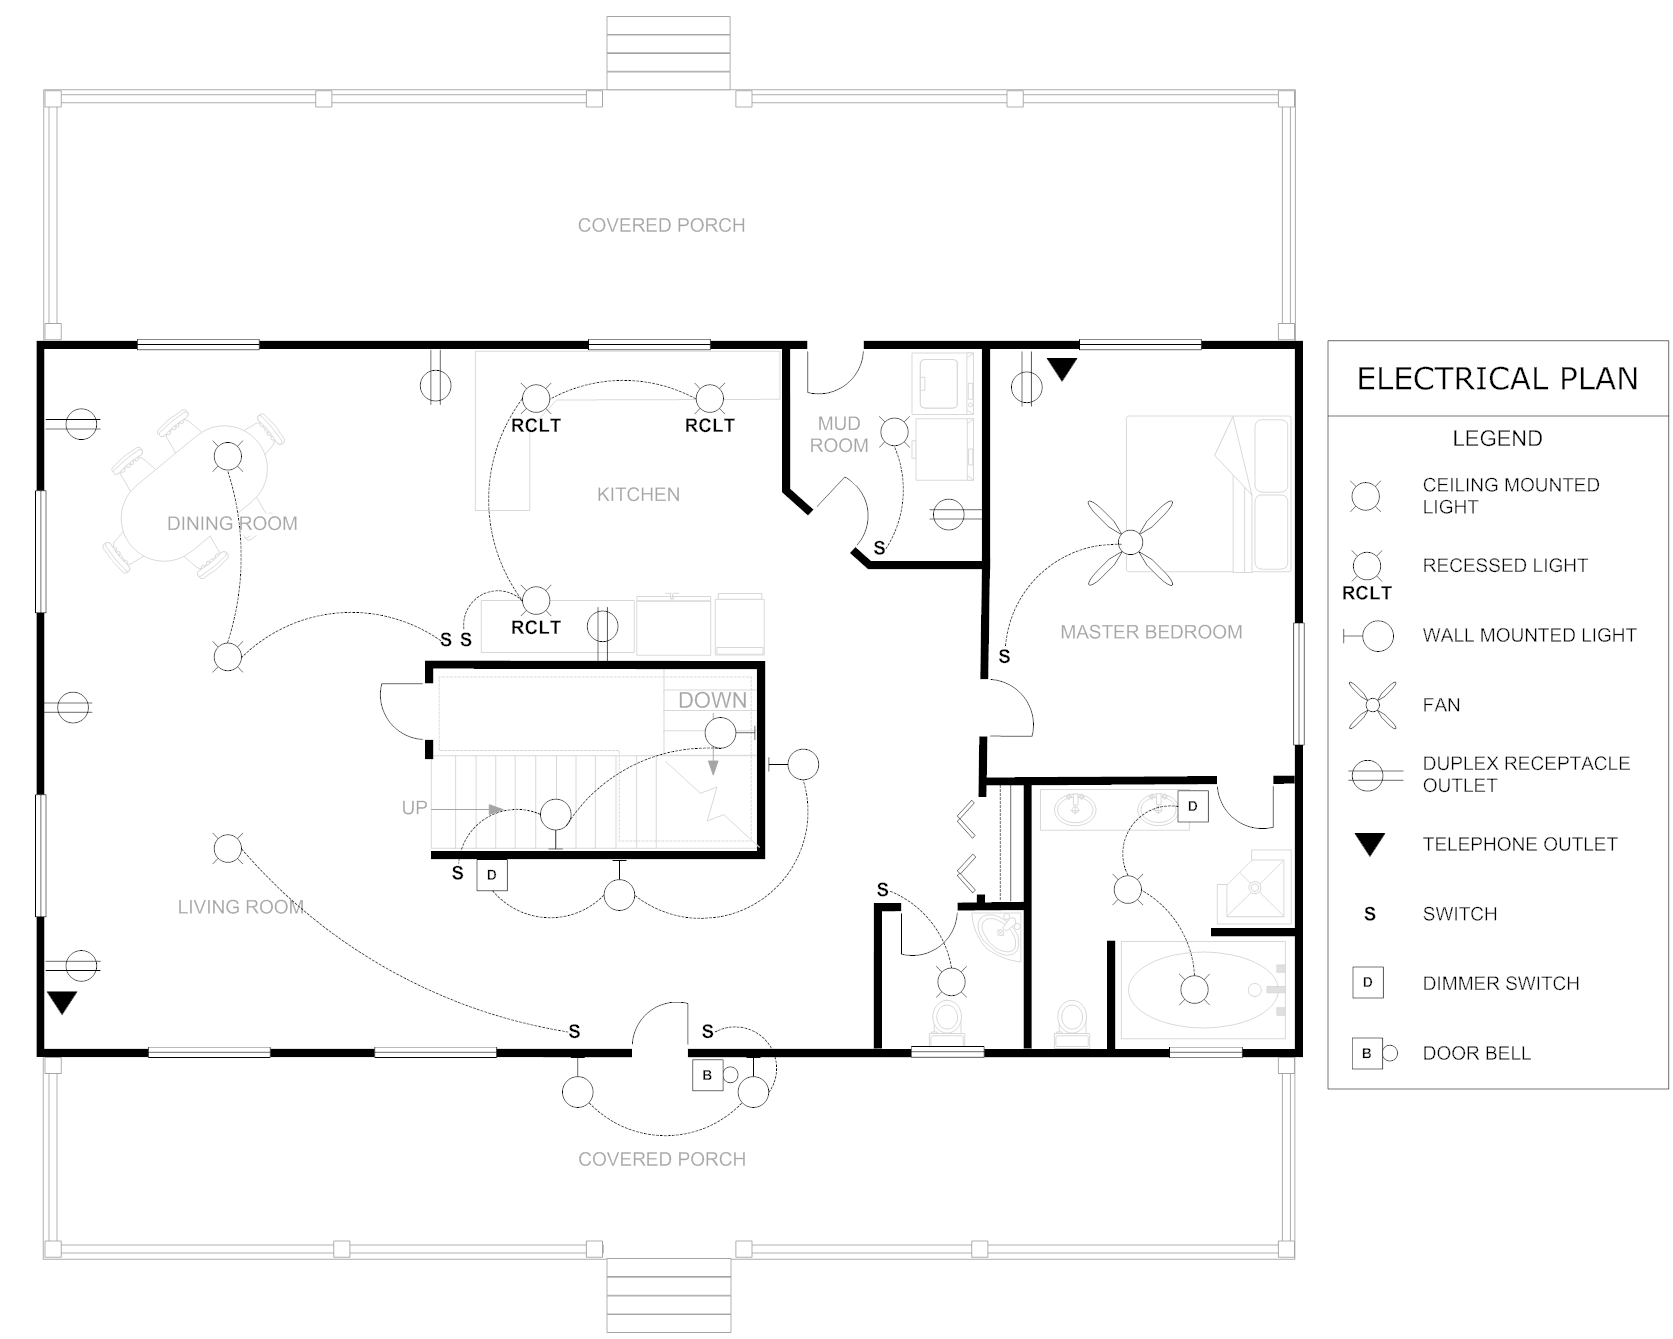 sample house plans 2 home design ideas sample house plans with dimensions sample house plans